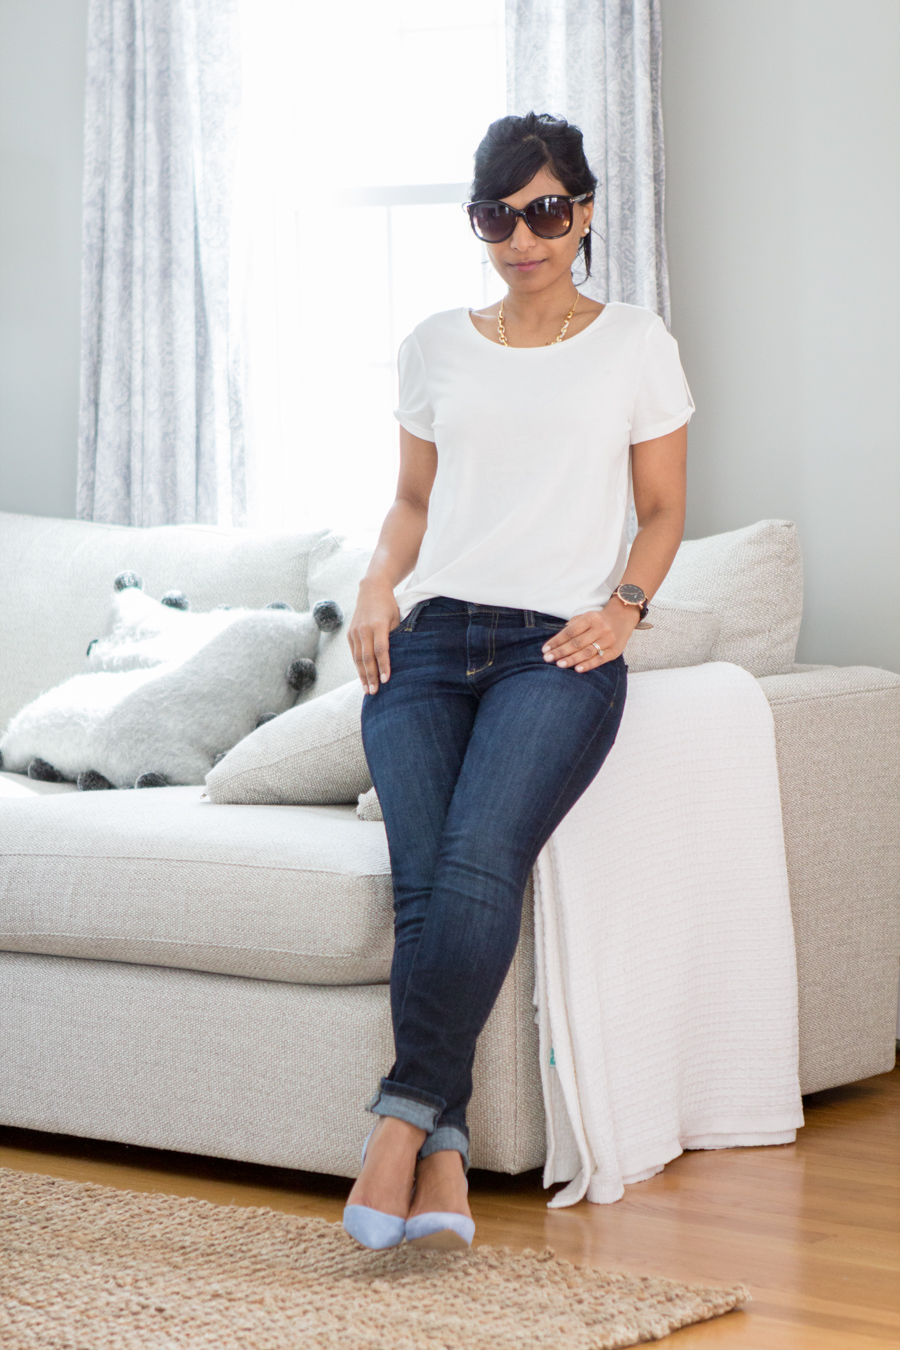 white t-shirt, white top, white blouse, white shirt, white button-down, casual dressing, weekend style, weekend wear, relaxed style, comfortable style, easy chic, mommy style, mom fashion, mom style, petite fashion, closet essentials, spring update, blue jeans, dark rinse jeans, blue pumps, blue suede shoes